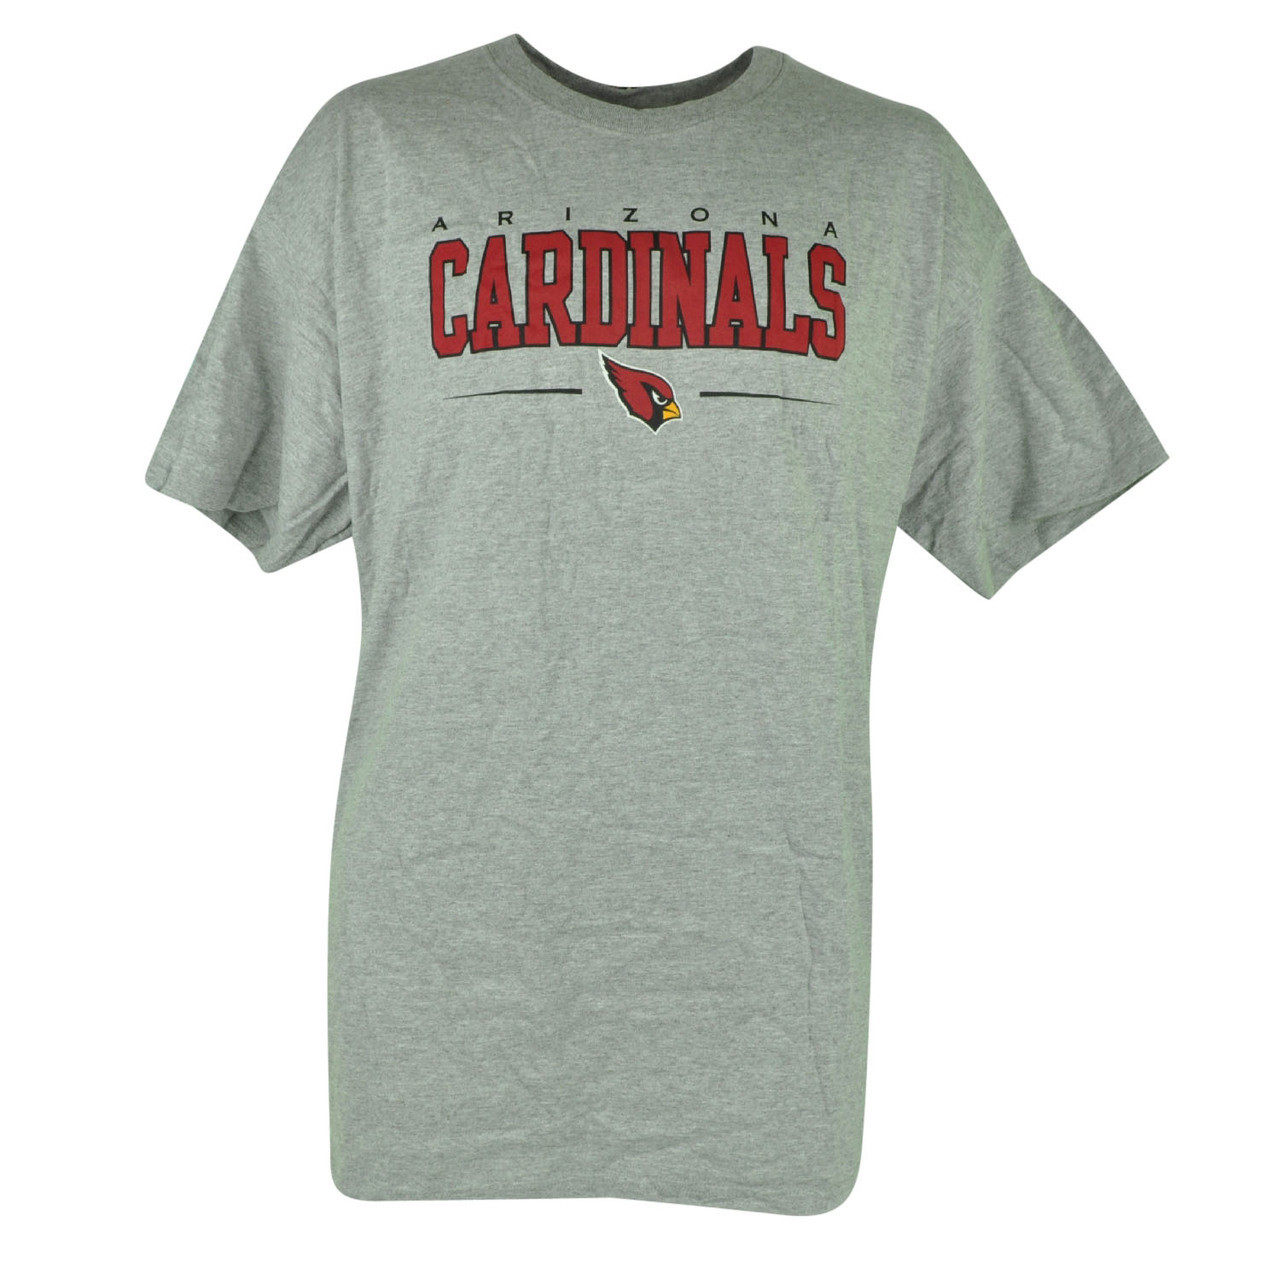 NFL Arizona Cardinals Tshirt Cup Set Grey Shirt Tee Mug Football Short  Sleeve. Price   18.95. Image 1 837d9a132